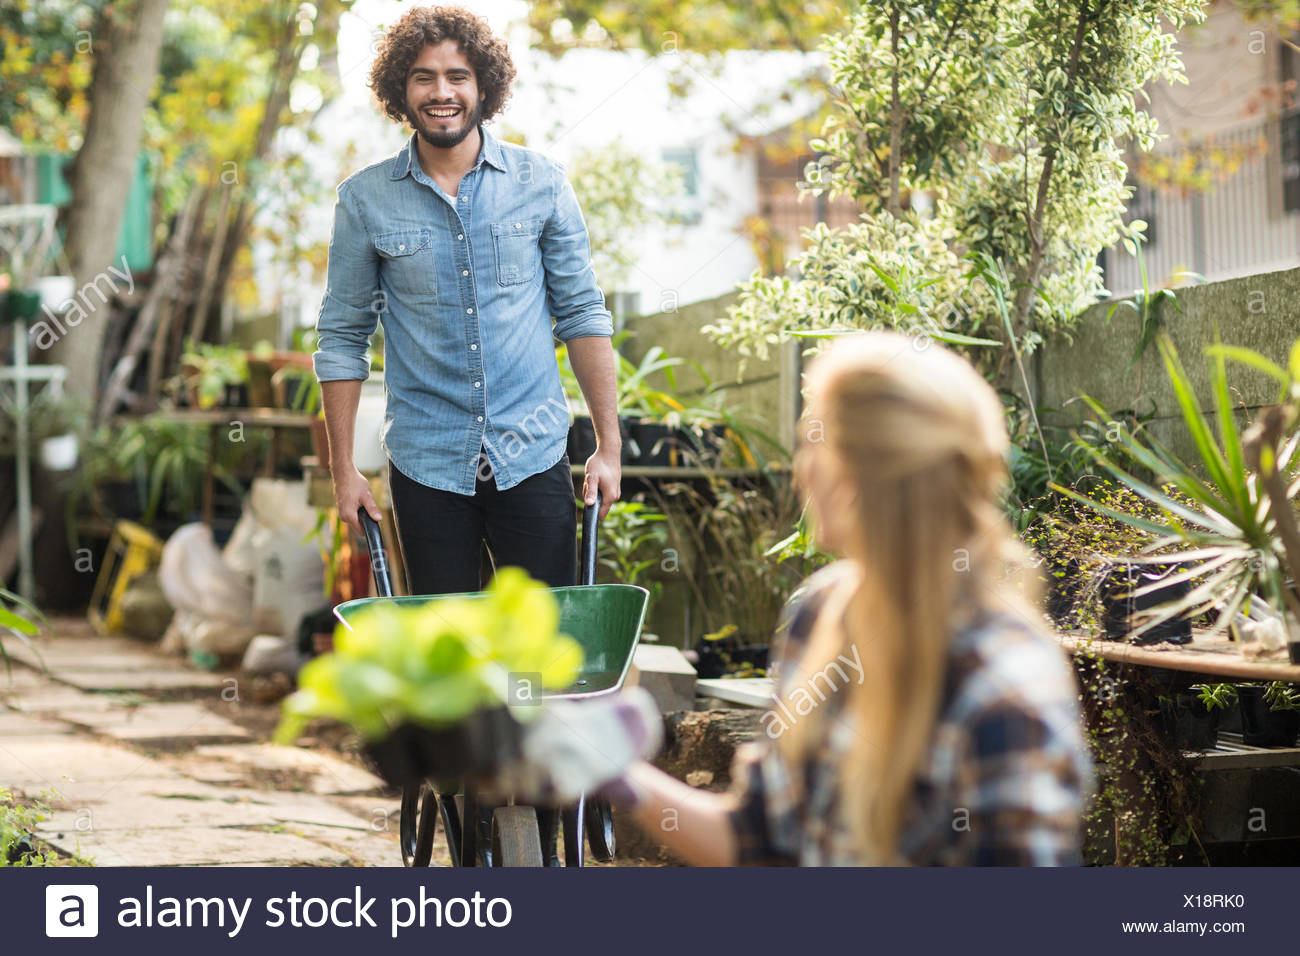 Gardener working while female coworker holding plants - Stock Image